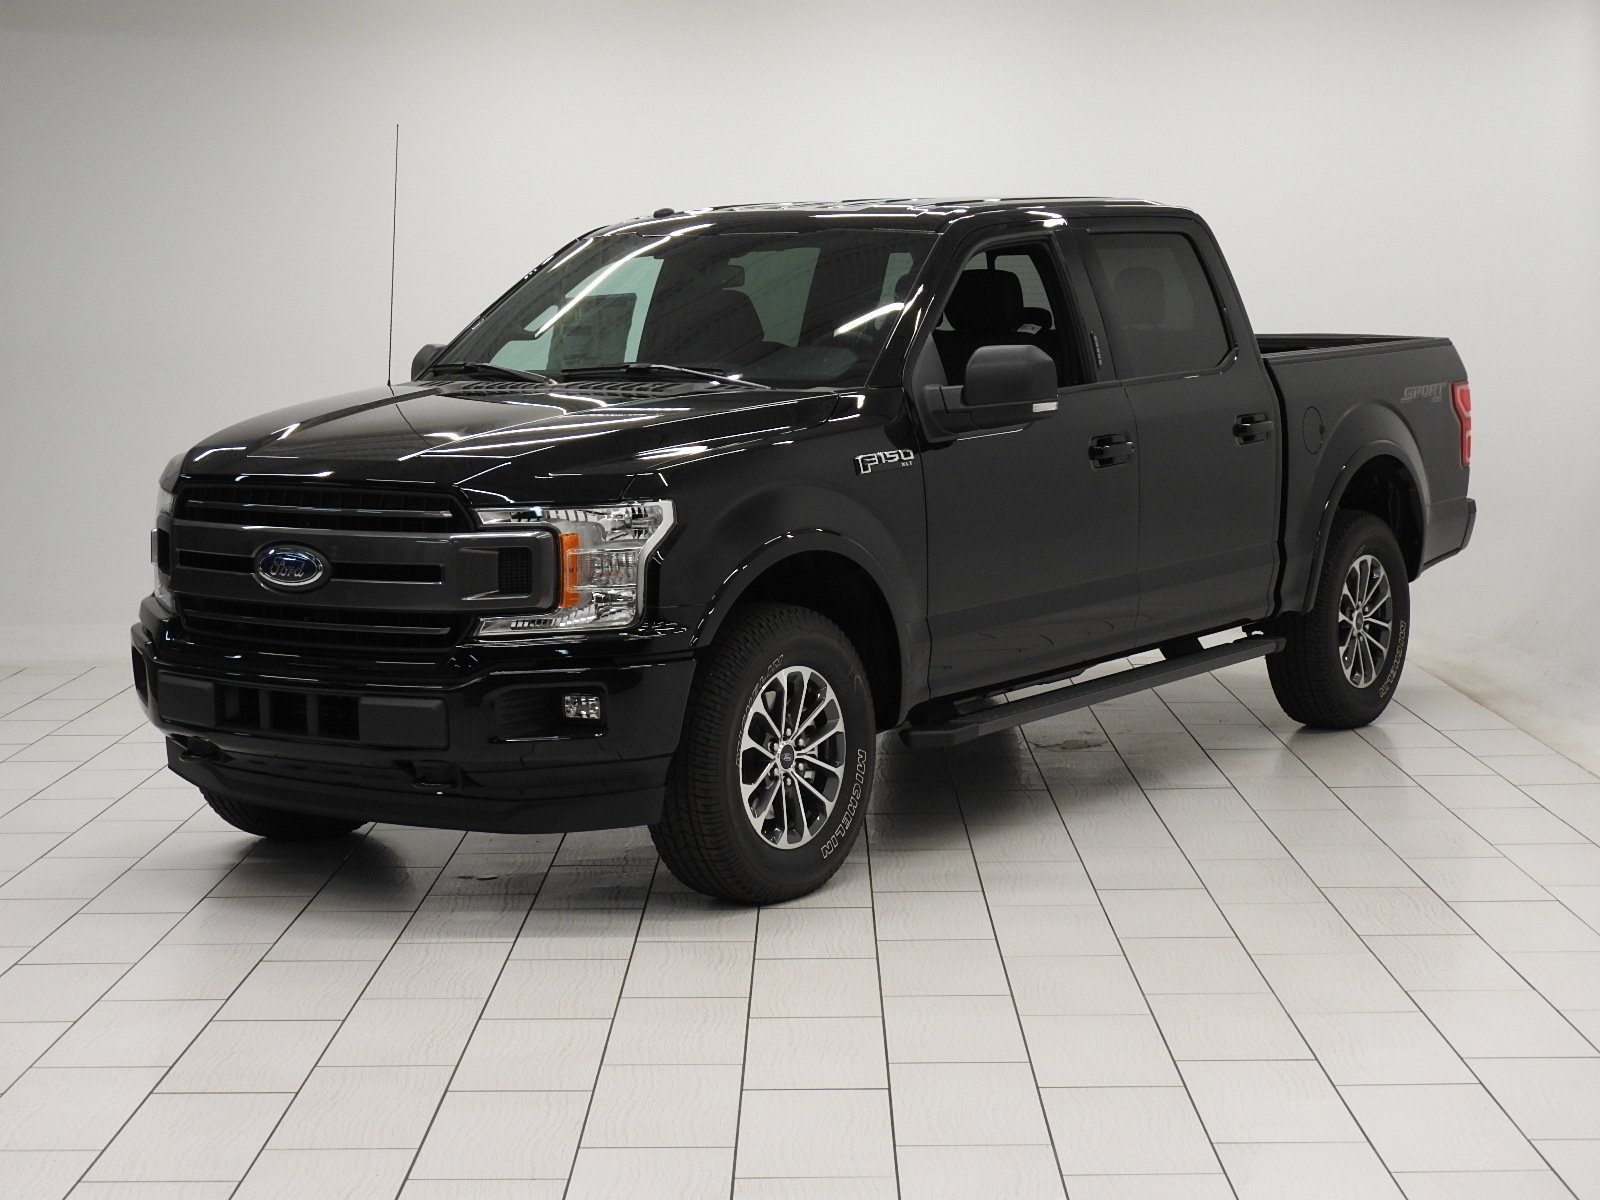 2017 2018 ford f 150 4wd prices msrp vs dealer invoice autos post. Black Bedroom Furniture Sets. Home Design Ideas